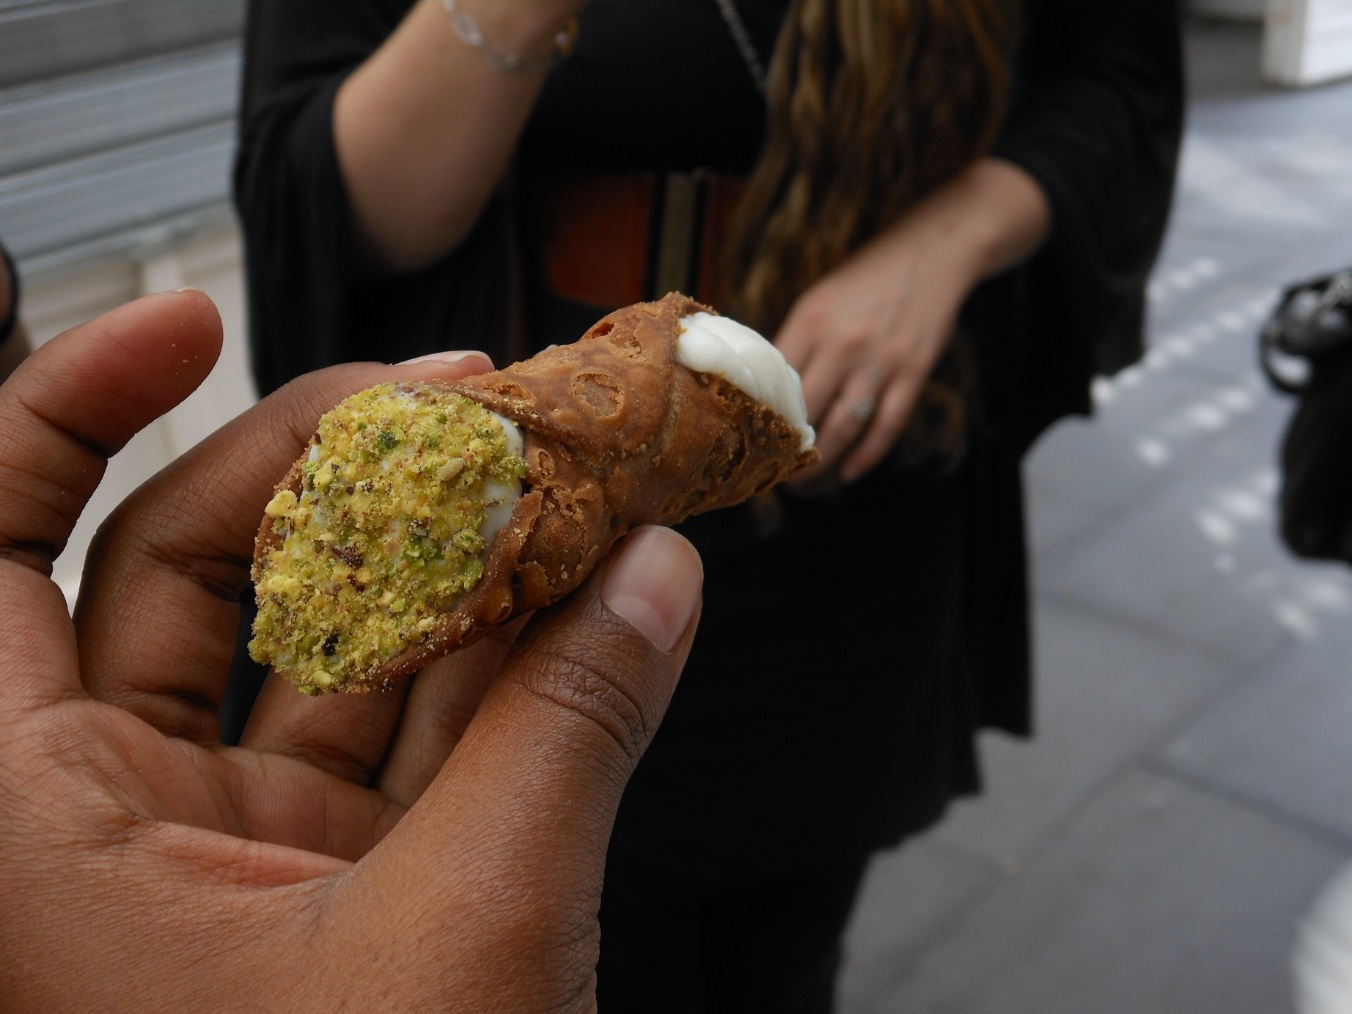 3 Authentic Lazio Desserts to Try While You Study in Italy, jcu food tour, Italian food, study abroad in Rome, roman desserts, Trastevere cafes, fresh cannoli